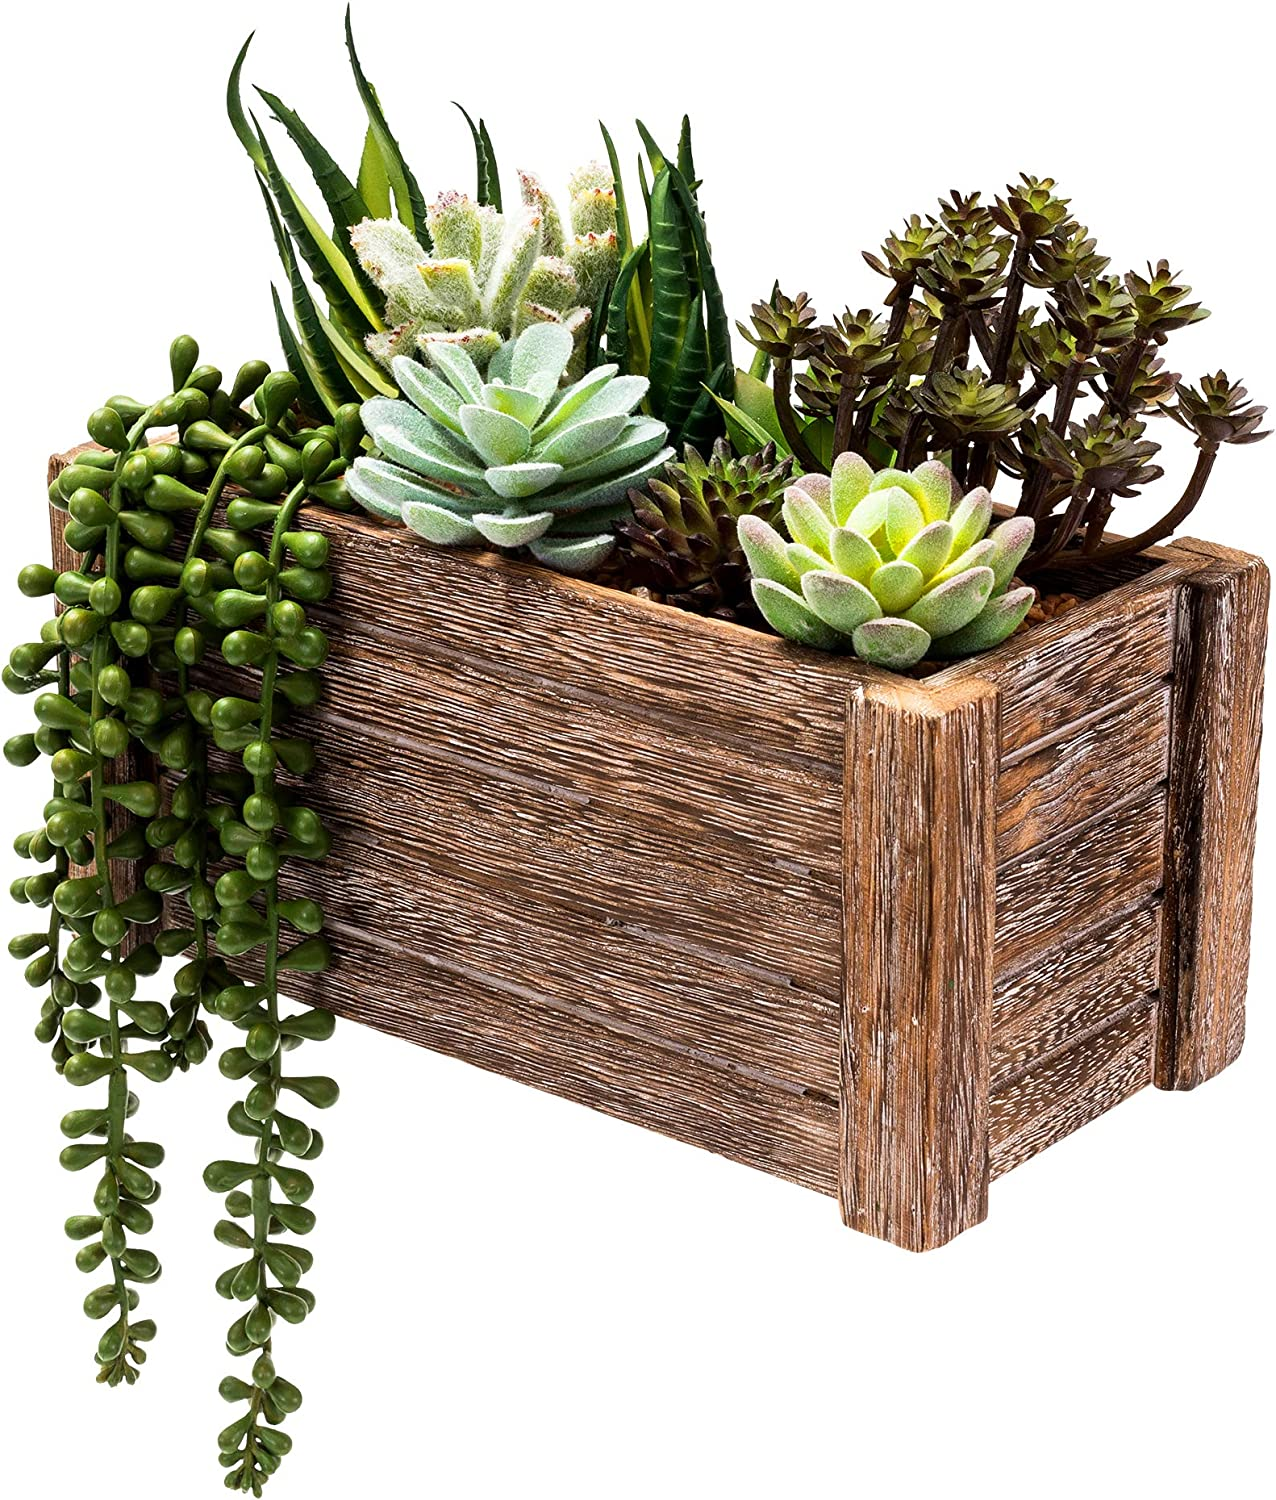 Faux Plants Small Fake Plant - 10 Pieces Potted in Box Mini Fake Plants Room Decor, Faux Plant Decor Indoor Plant Wall Decor Bathroom Plant Fake Desk Plant Office Plant Small Artificial Plants Outdoor